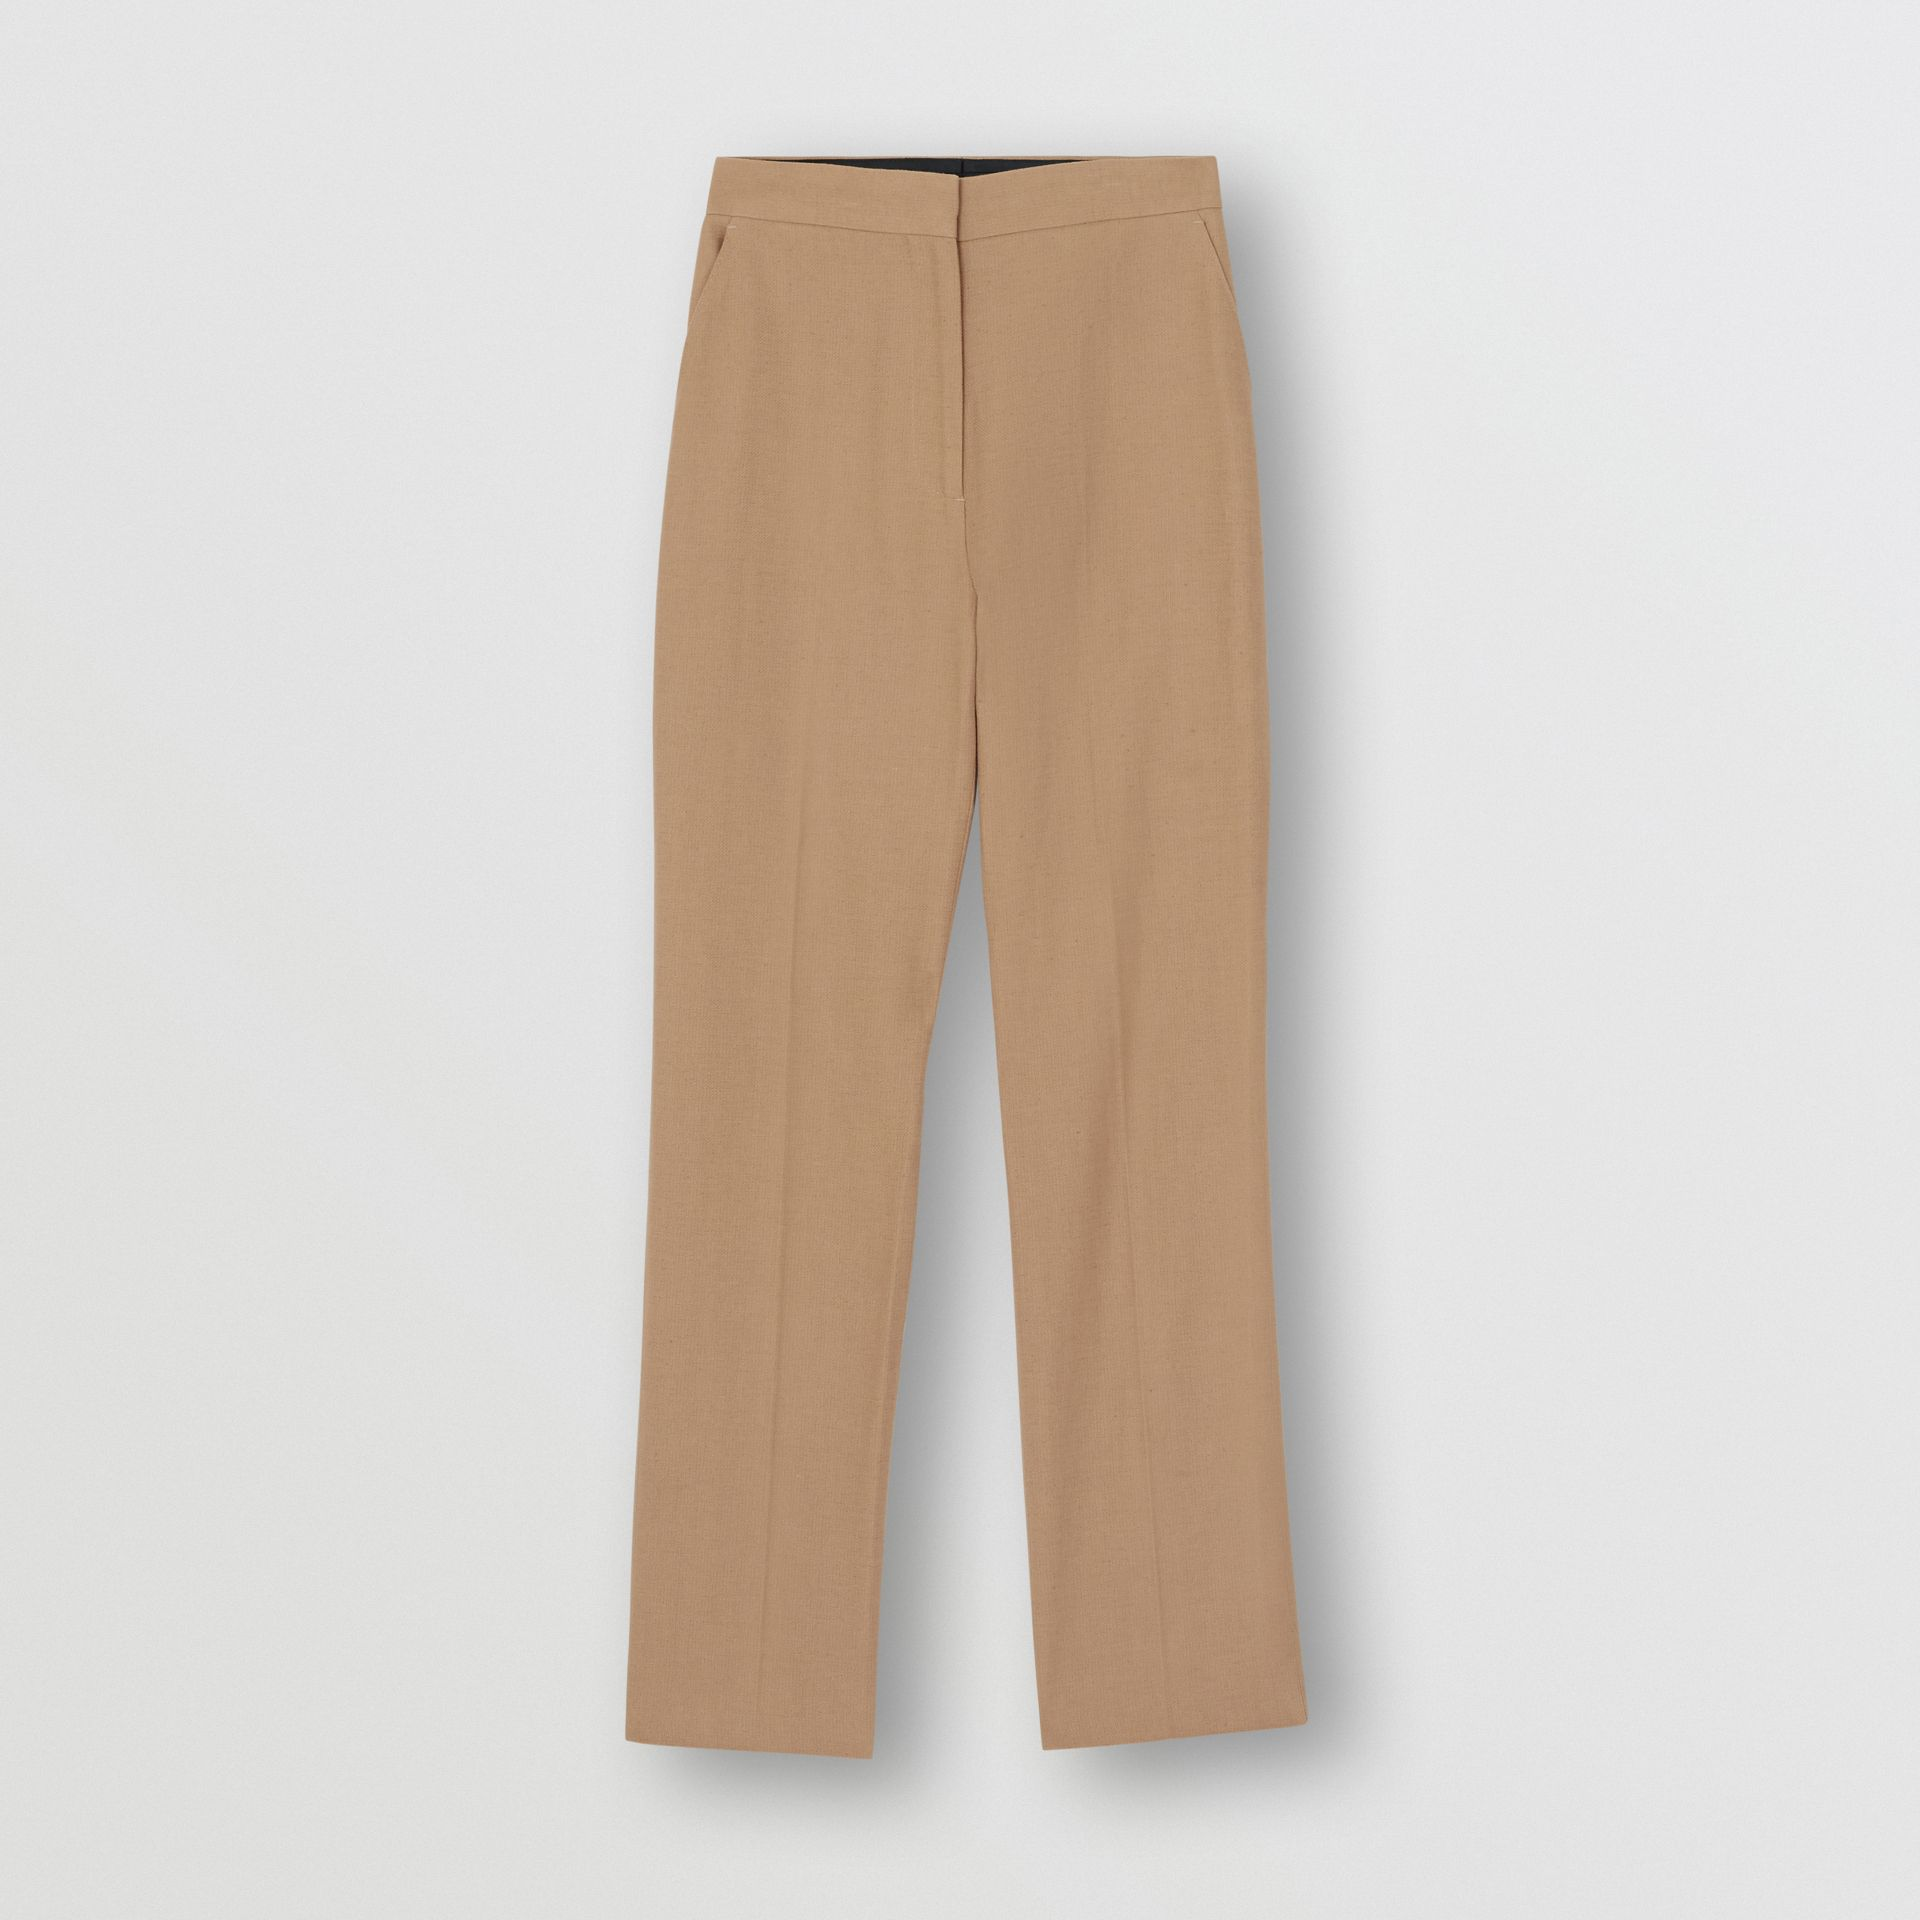 Cotton Linen Tailored Trousers in Ceramic Brown - Women | Burberry Canada - gallery image 3